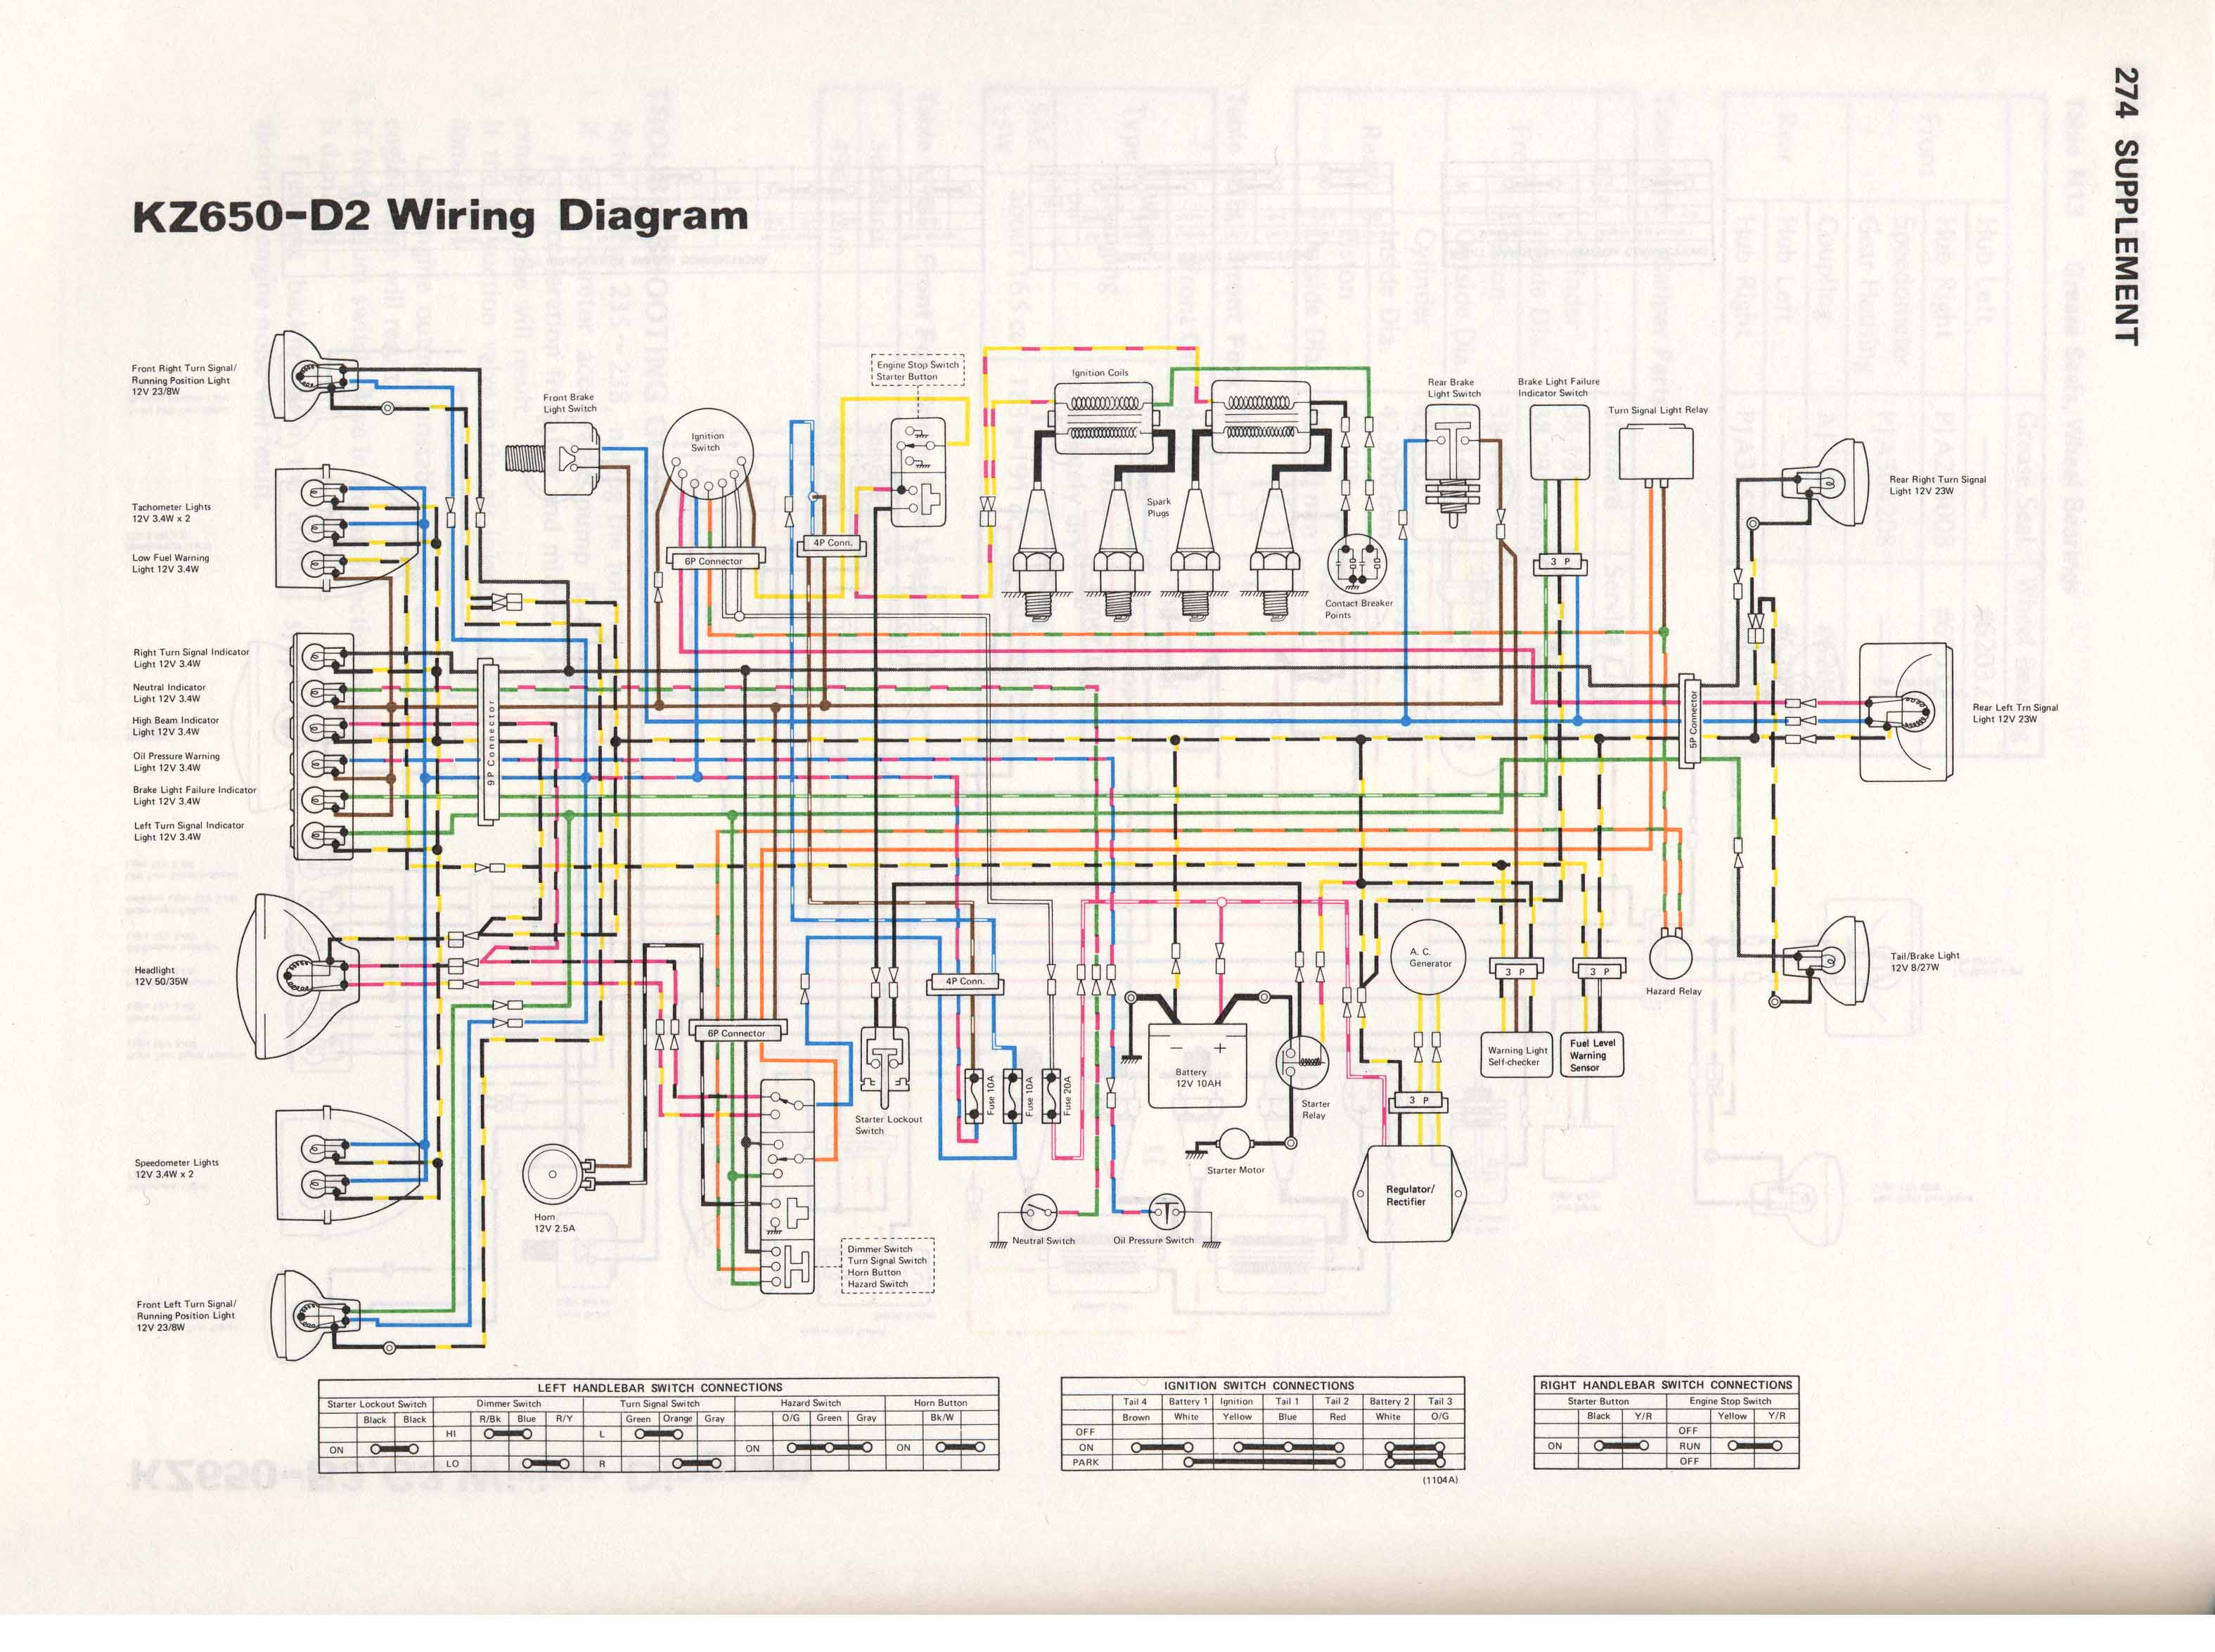 KZ650 D2 kz650 info wiring diagrams husqvarna wiring diagram at reclaimingppi.co